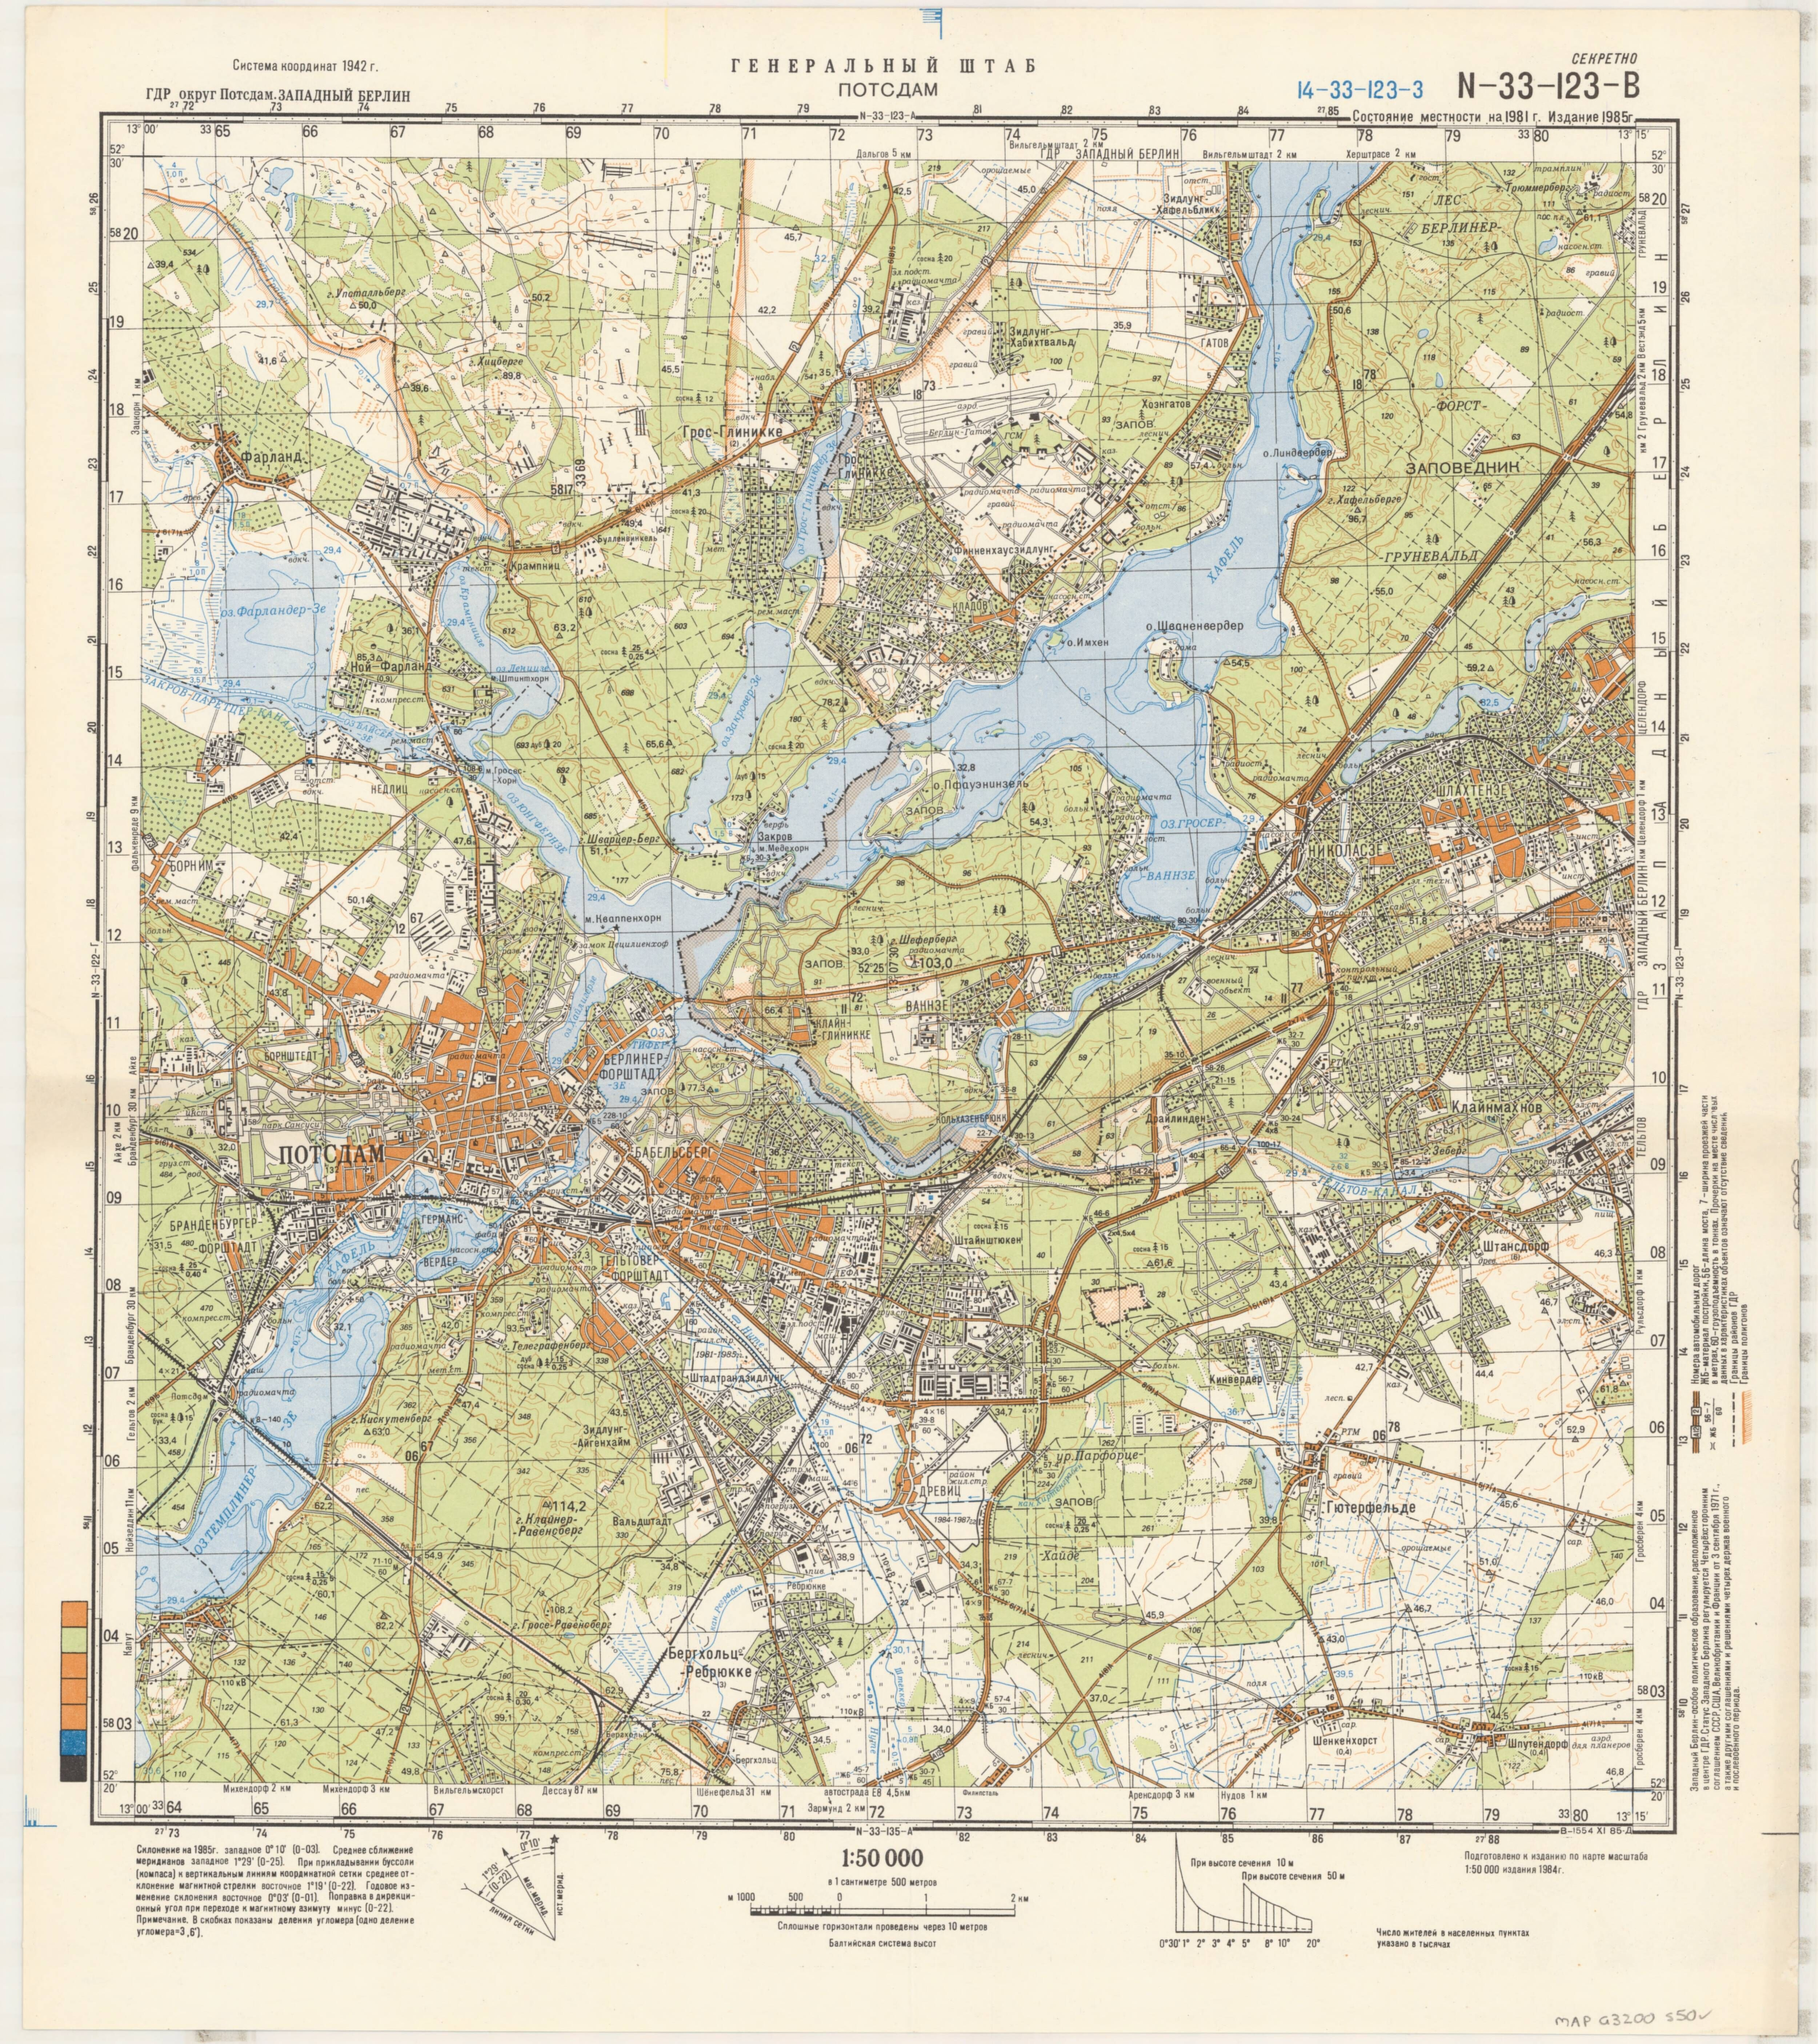 1985 soviet military topographic map of potsdam germany